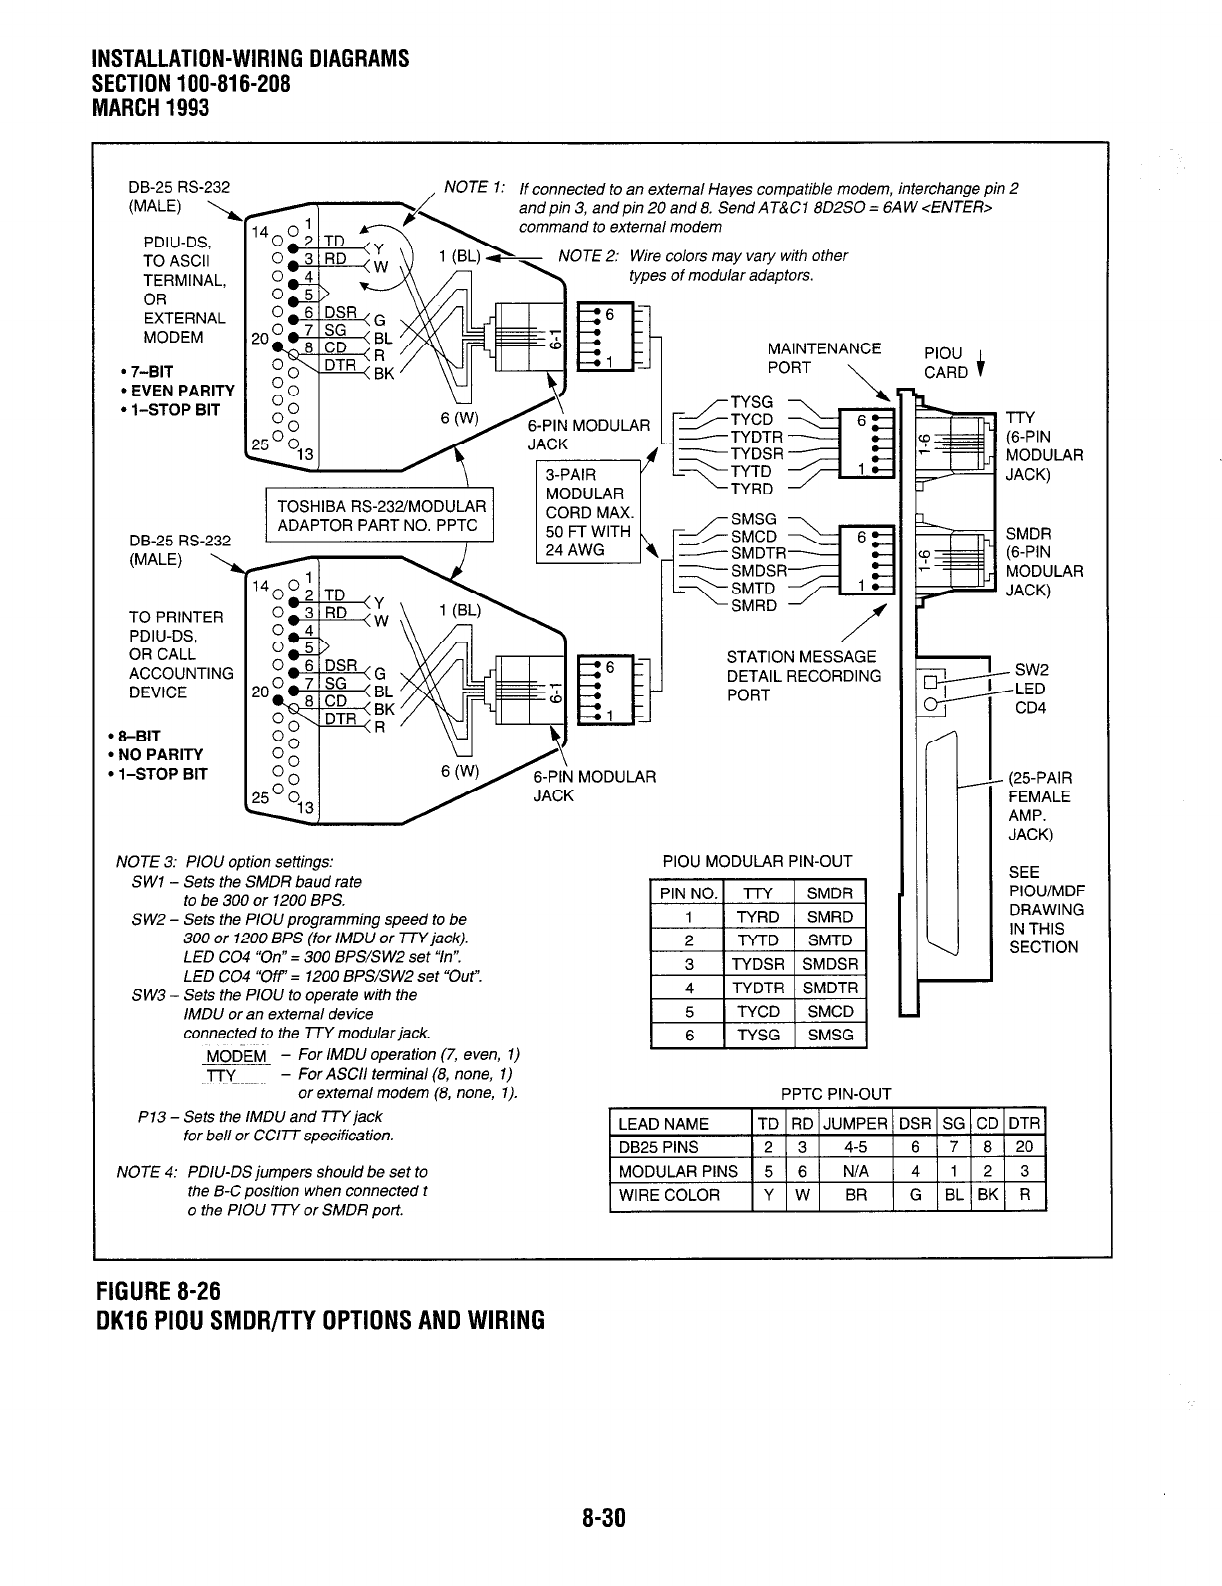 52c30e44 eb3d 42ea a7fe 5e185b64a3b0 bge0 page 224 of toshiba cell phone strata dk8 user guide Home Phone Wiring Diagram at mr168.co